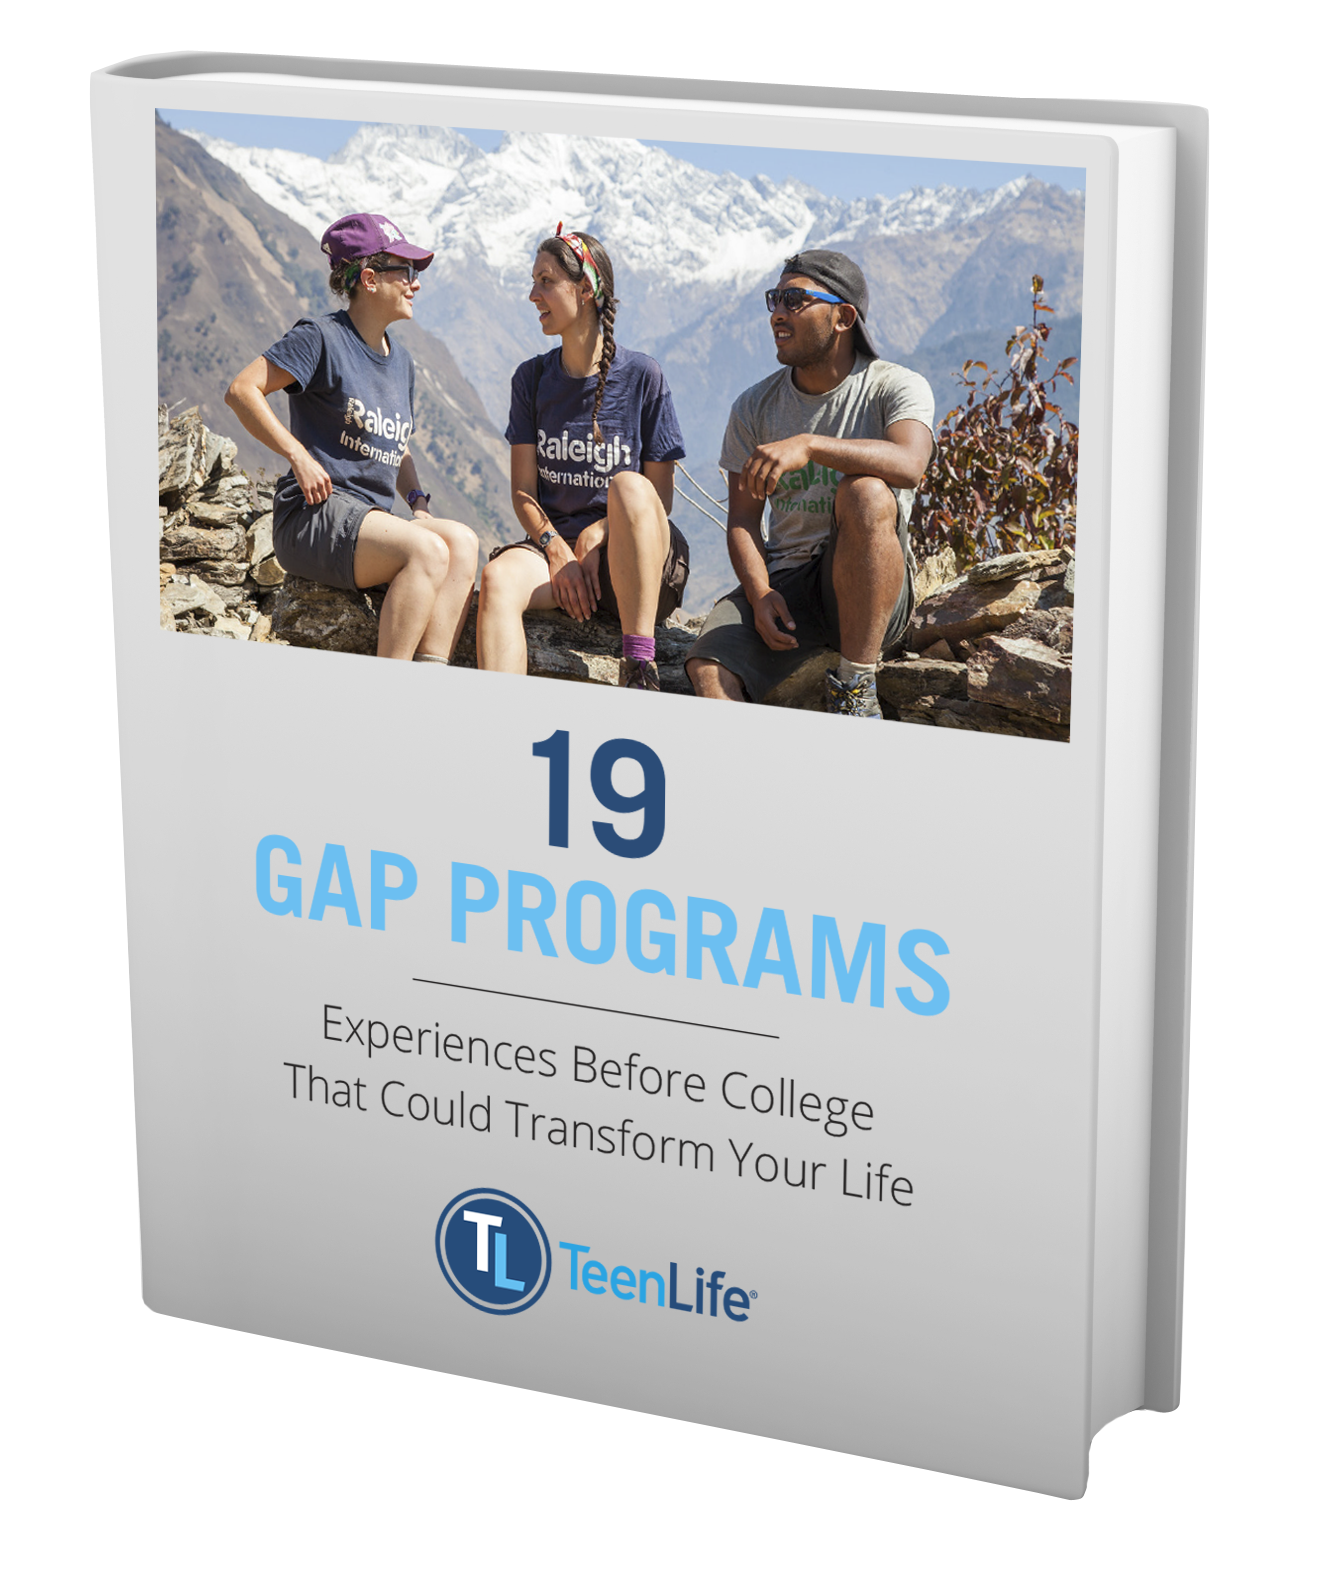 19 Gap Programs-TeenLife